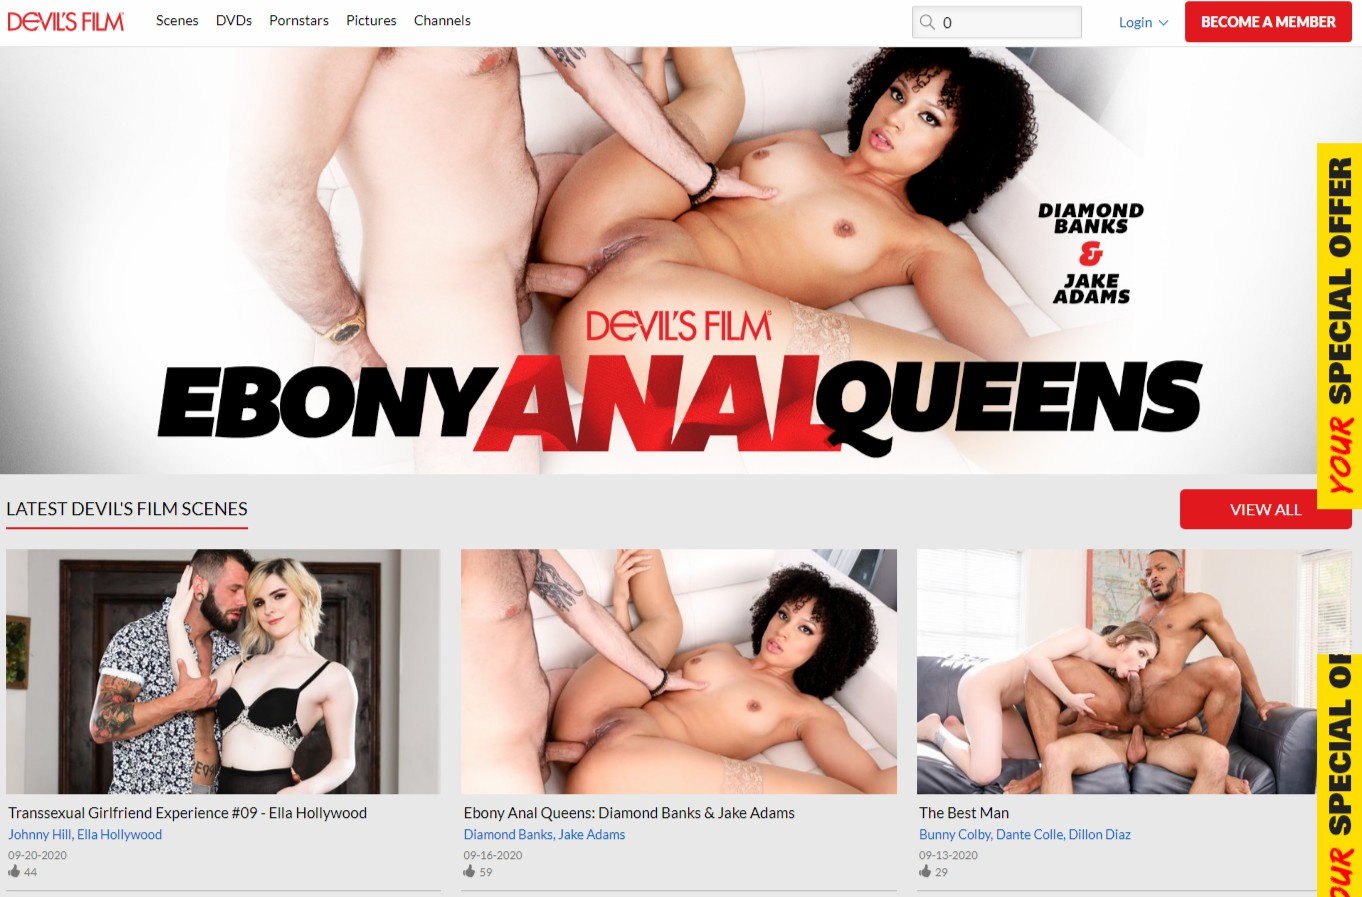 Devilsfilm - Best Premium XXX Sites